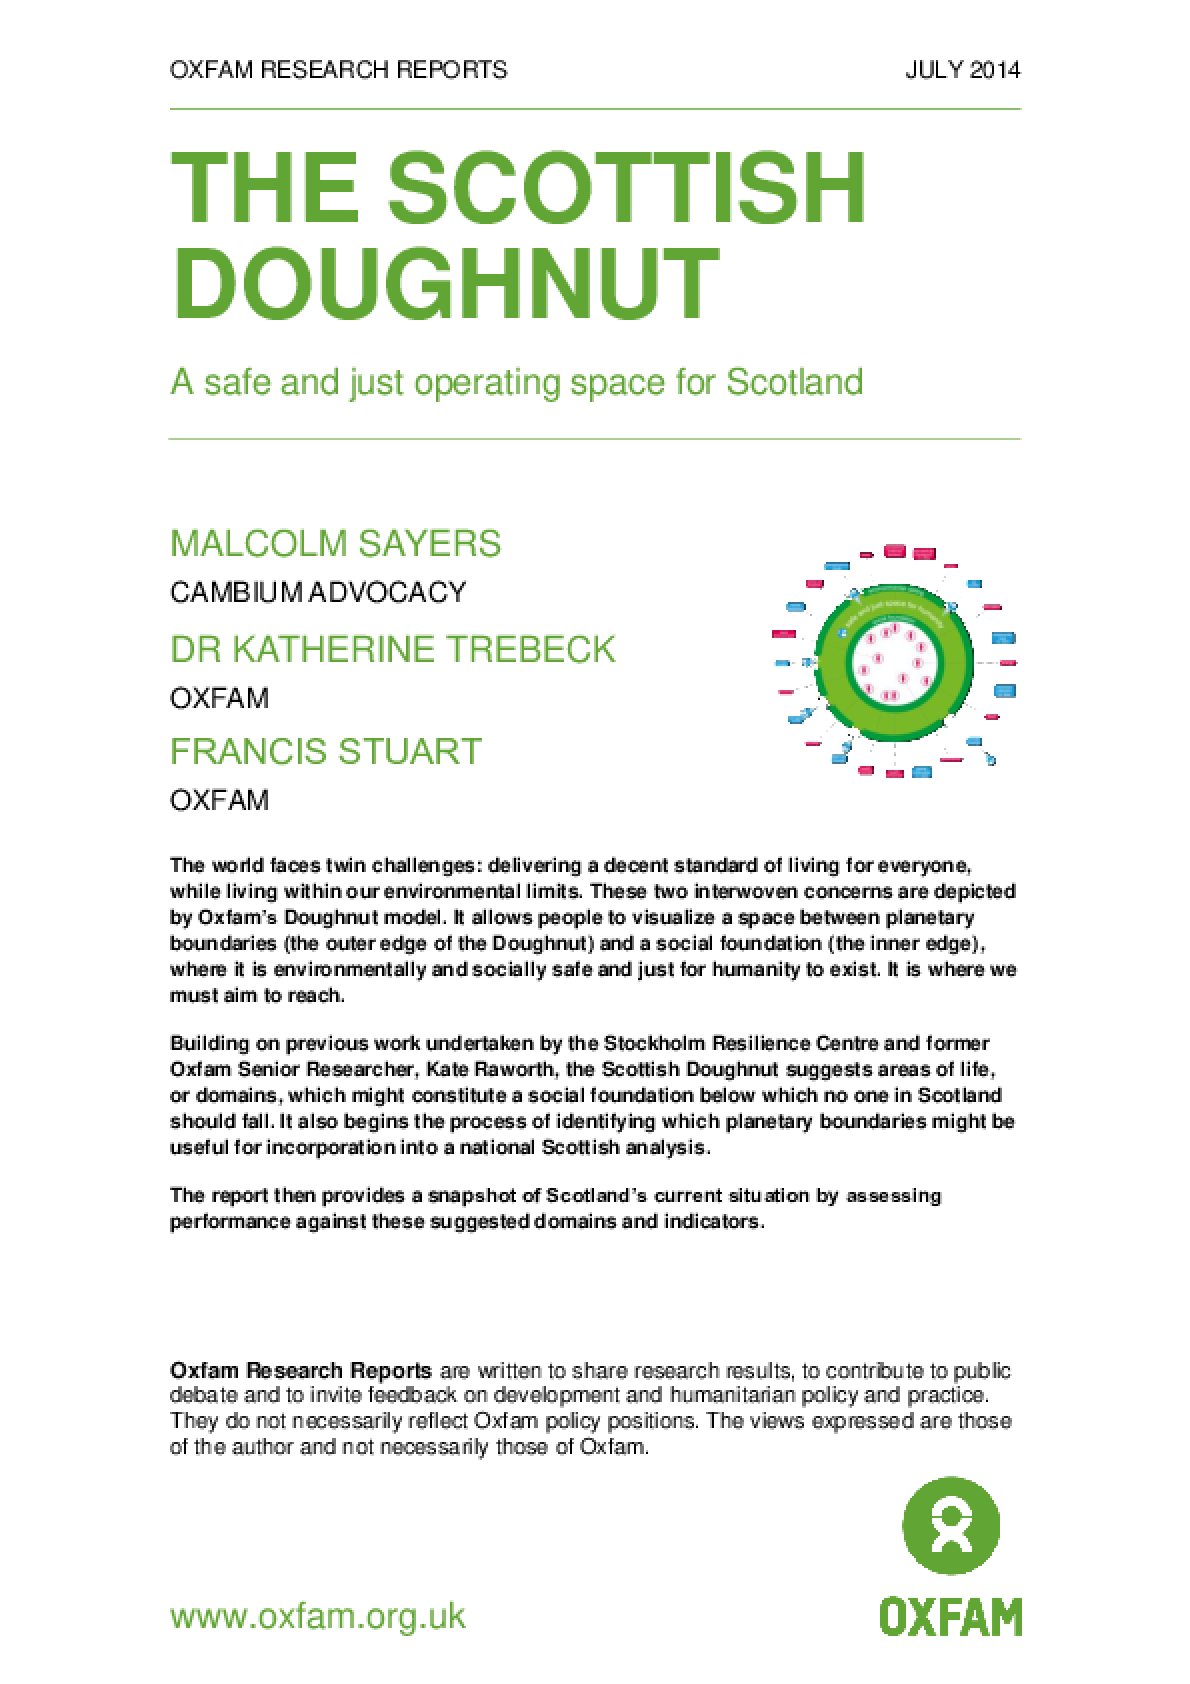 The Scottish Doughnut: A safe and just operating space for Scotland